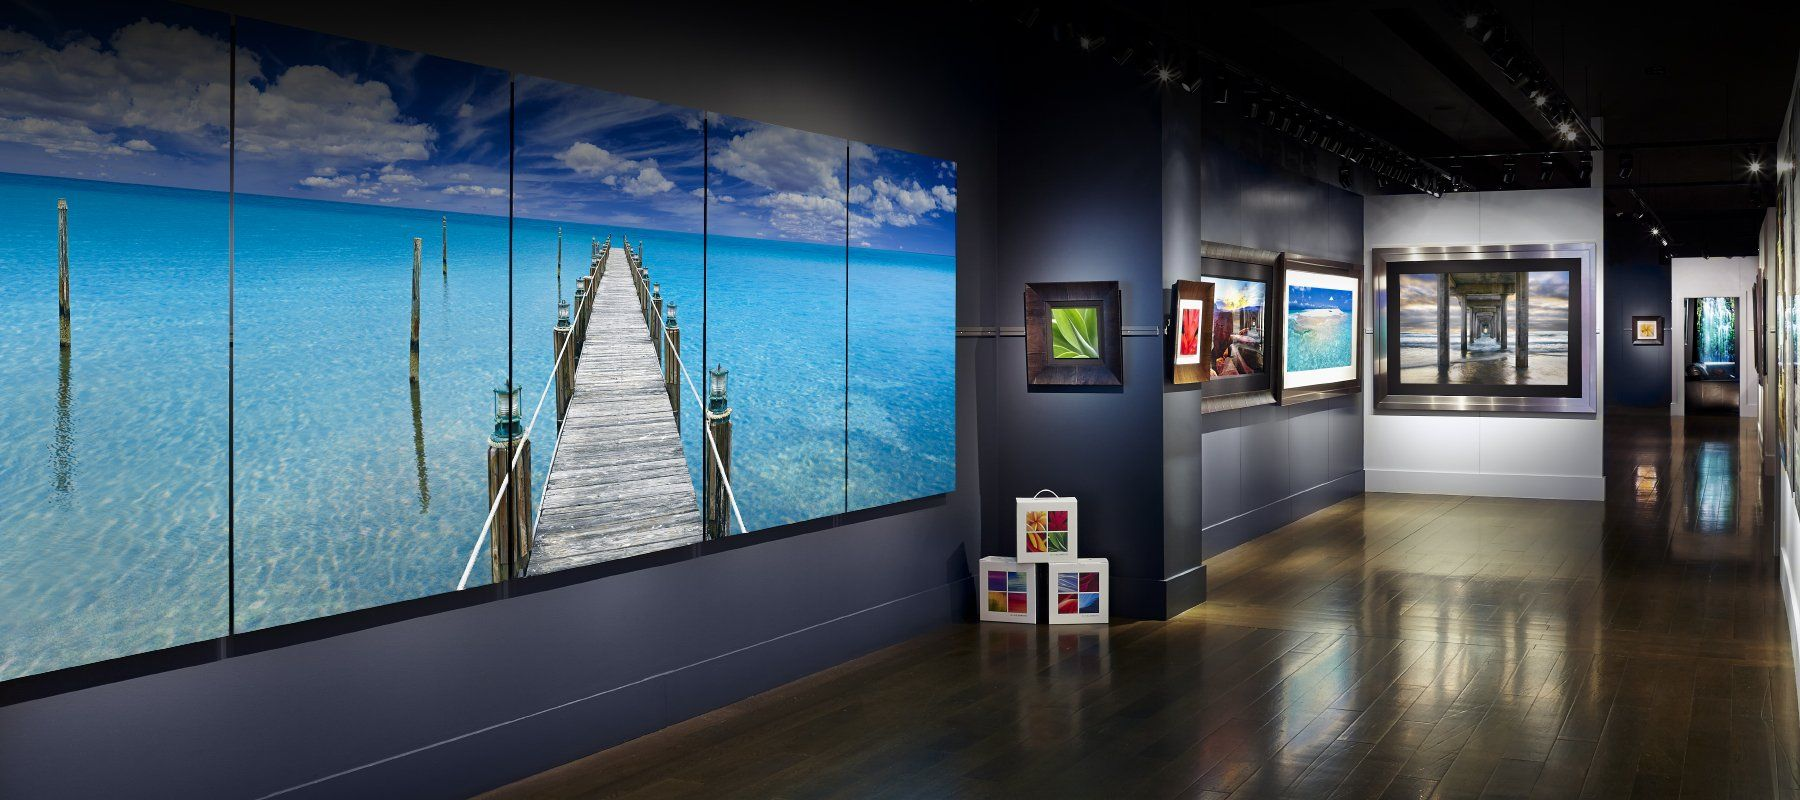 Visit the LIK Fine Art Gallery on Front Street in Lahaina